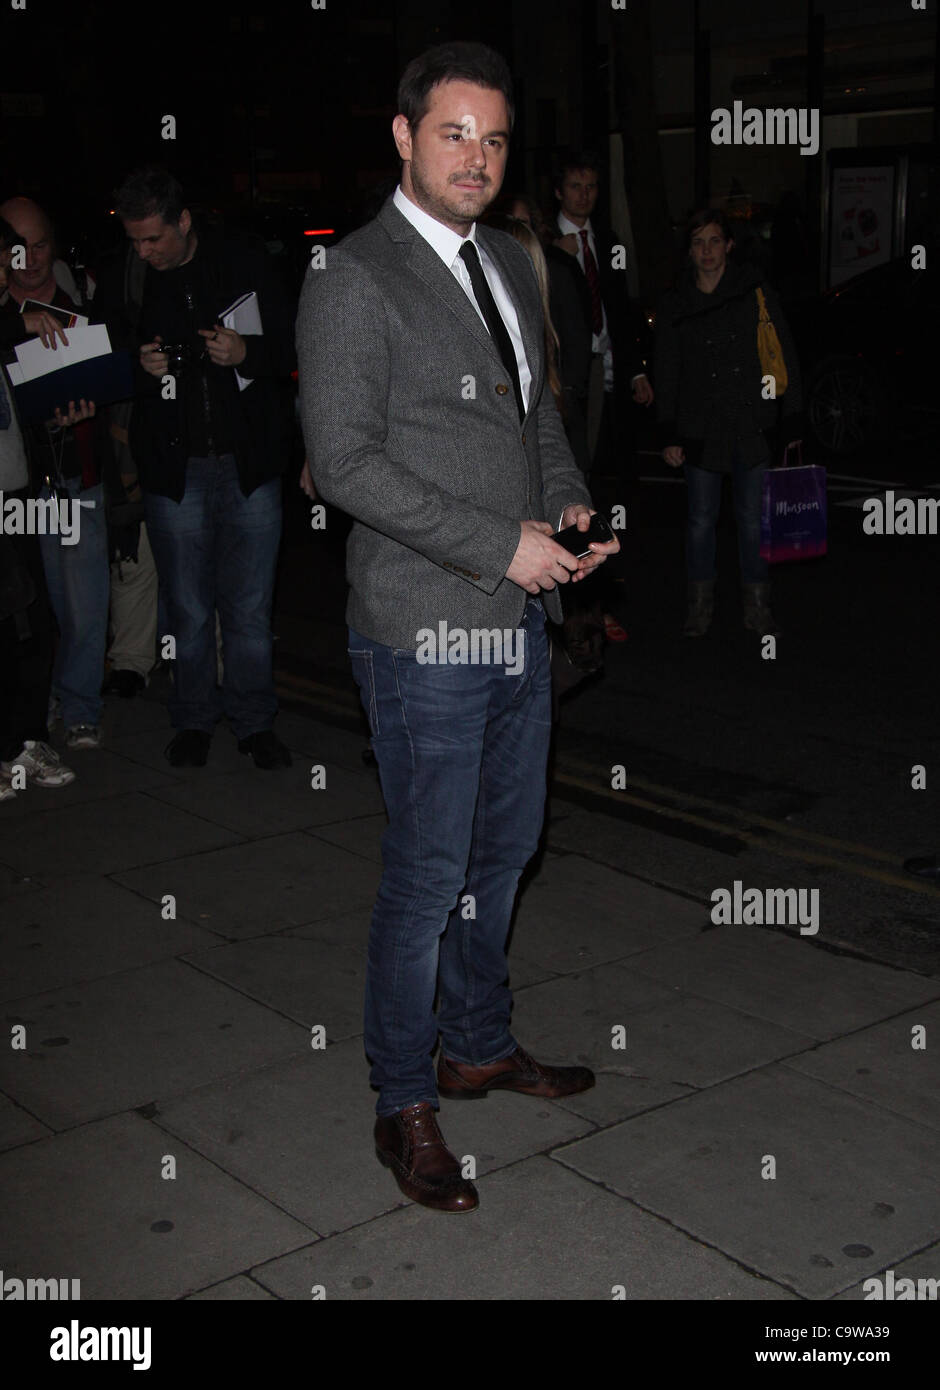 London, UK, 23/02/2012 Danny Dyer arrives for the 'Deviation' world premiere at the Odeon Covent Garden - Stock Image